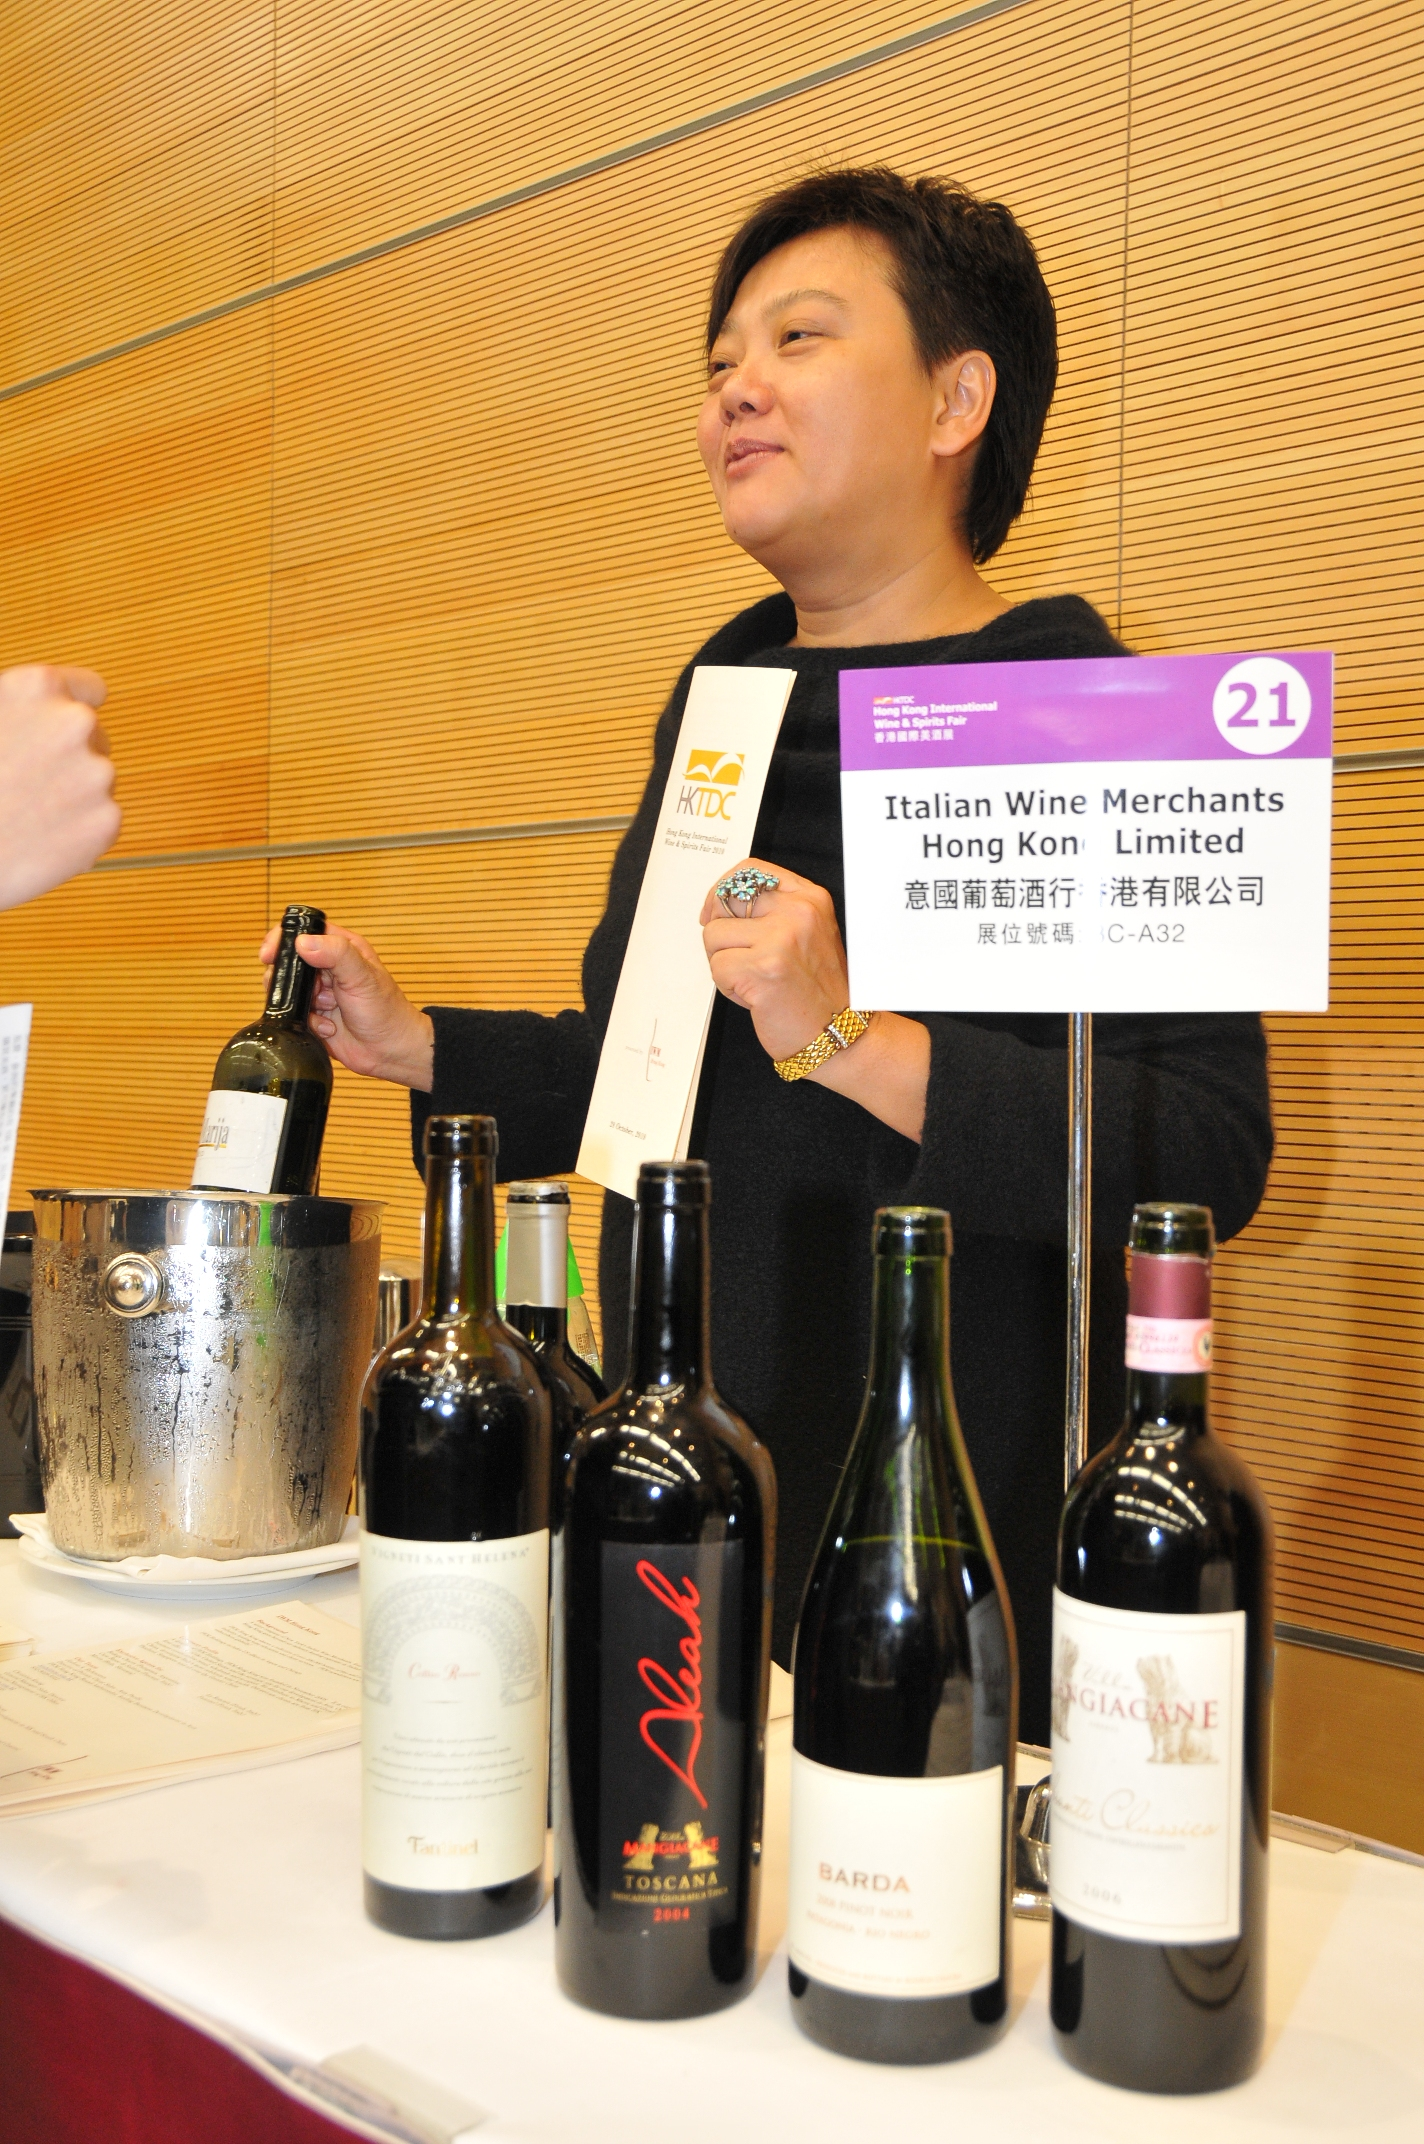 hktdc com - Record Number of Exhibitors to Join Hong Kong Wine Fair